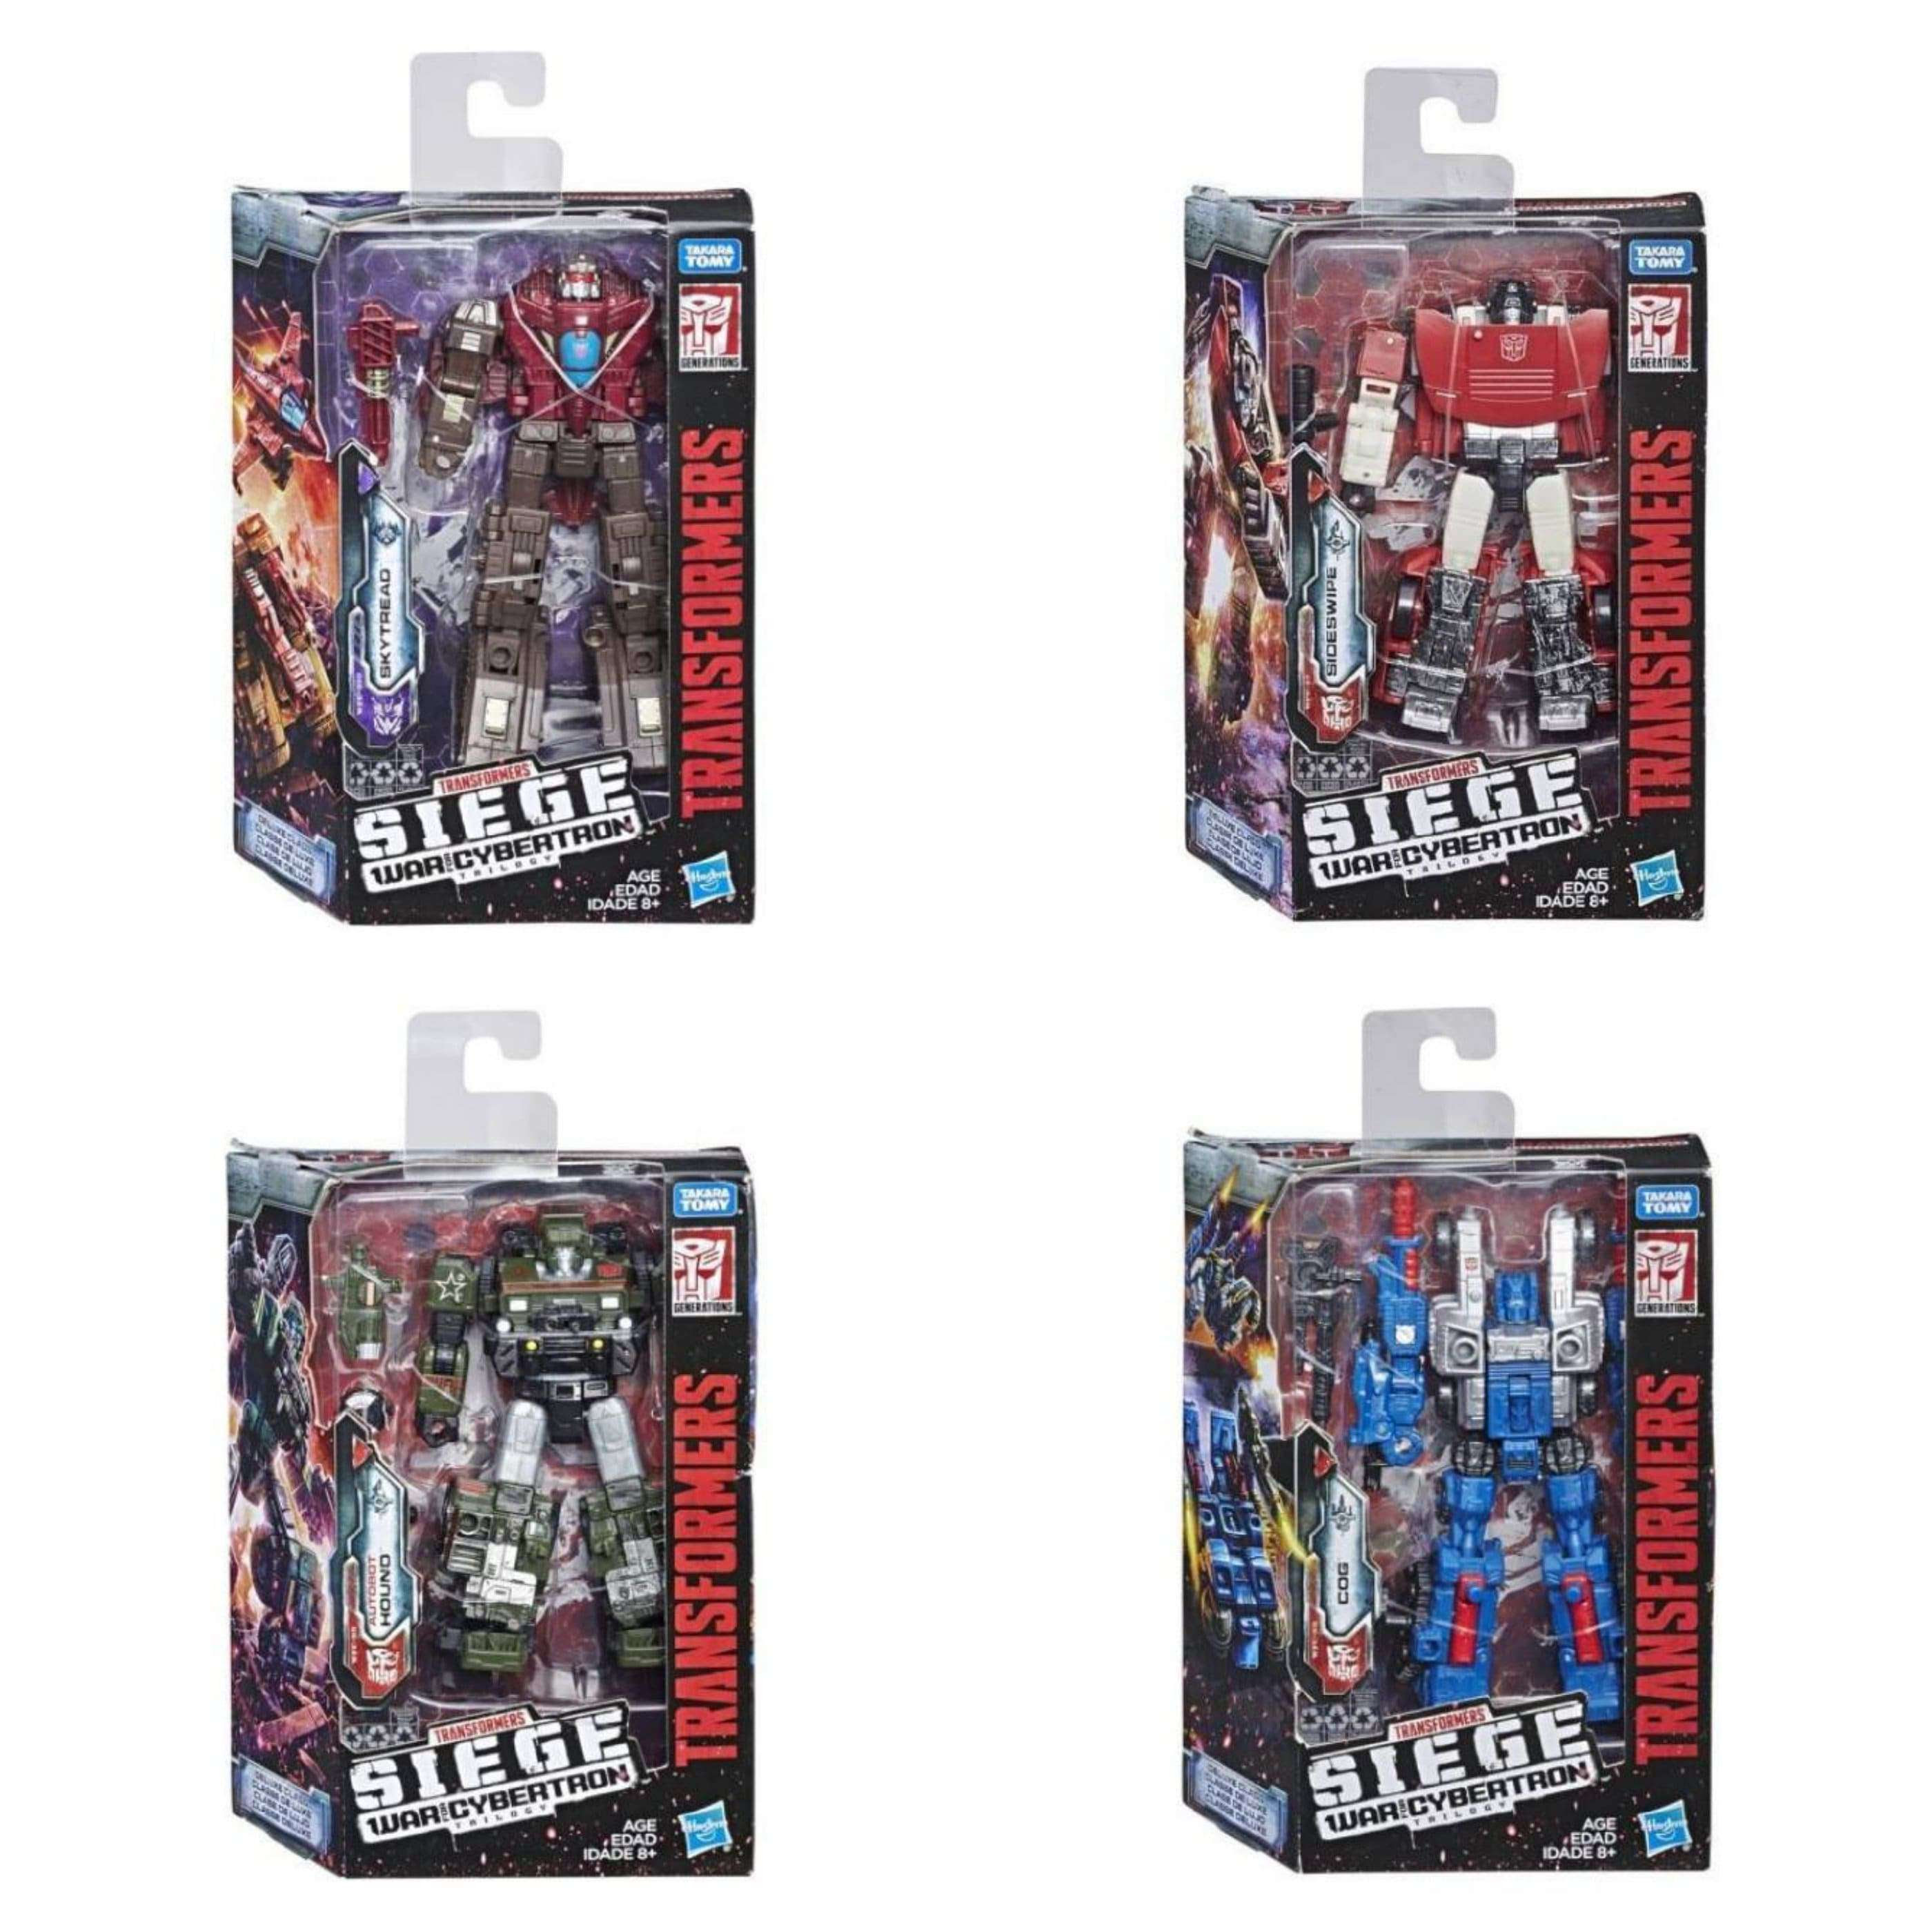 Image of Transformers: Generations - War for Cybertron Siege Deluxe Wave 1 - Complete Set of 4